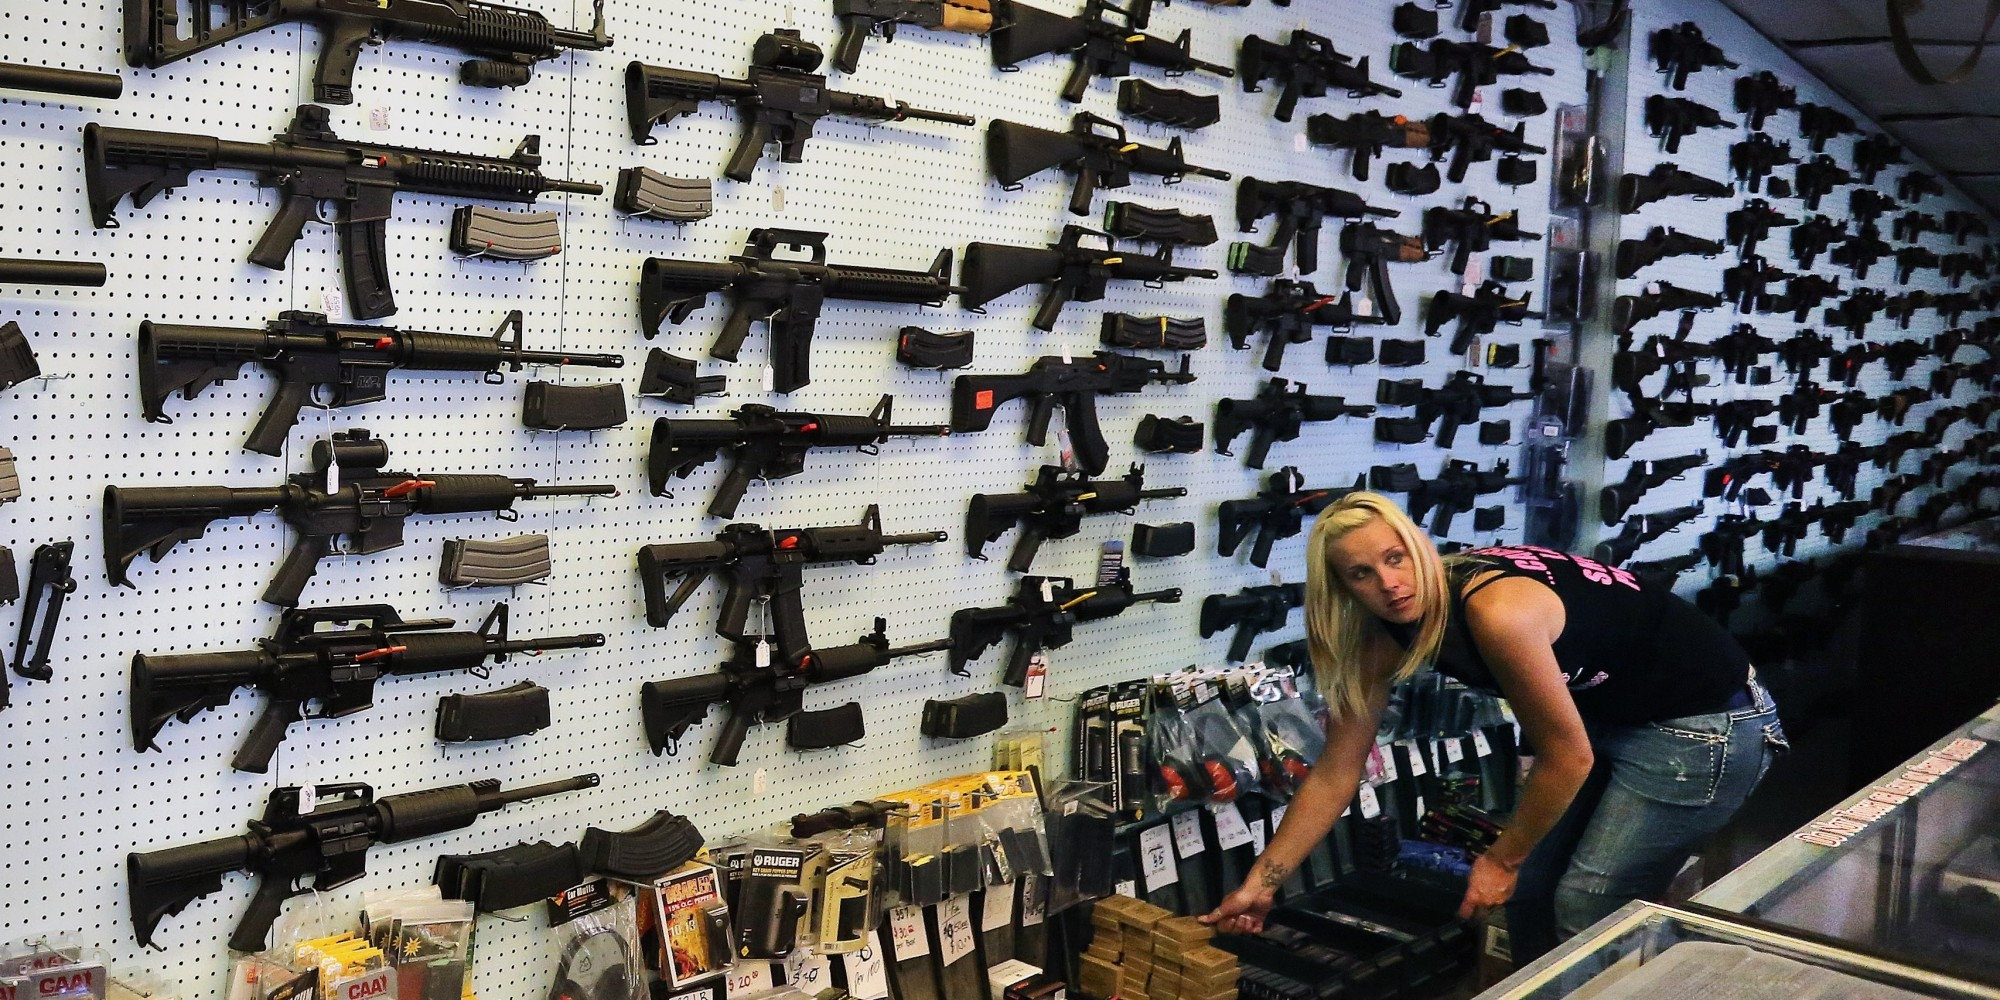 Black Friday is typically the busiest day of they year for Colorado Bureau of Investigation workers who do background checks for gun purchases, and for many gun sellers as well.